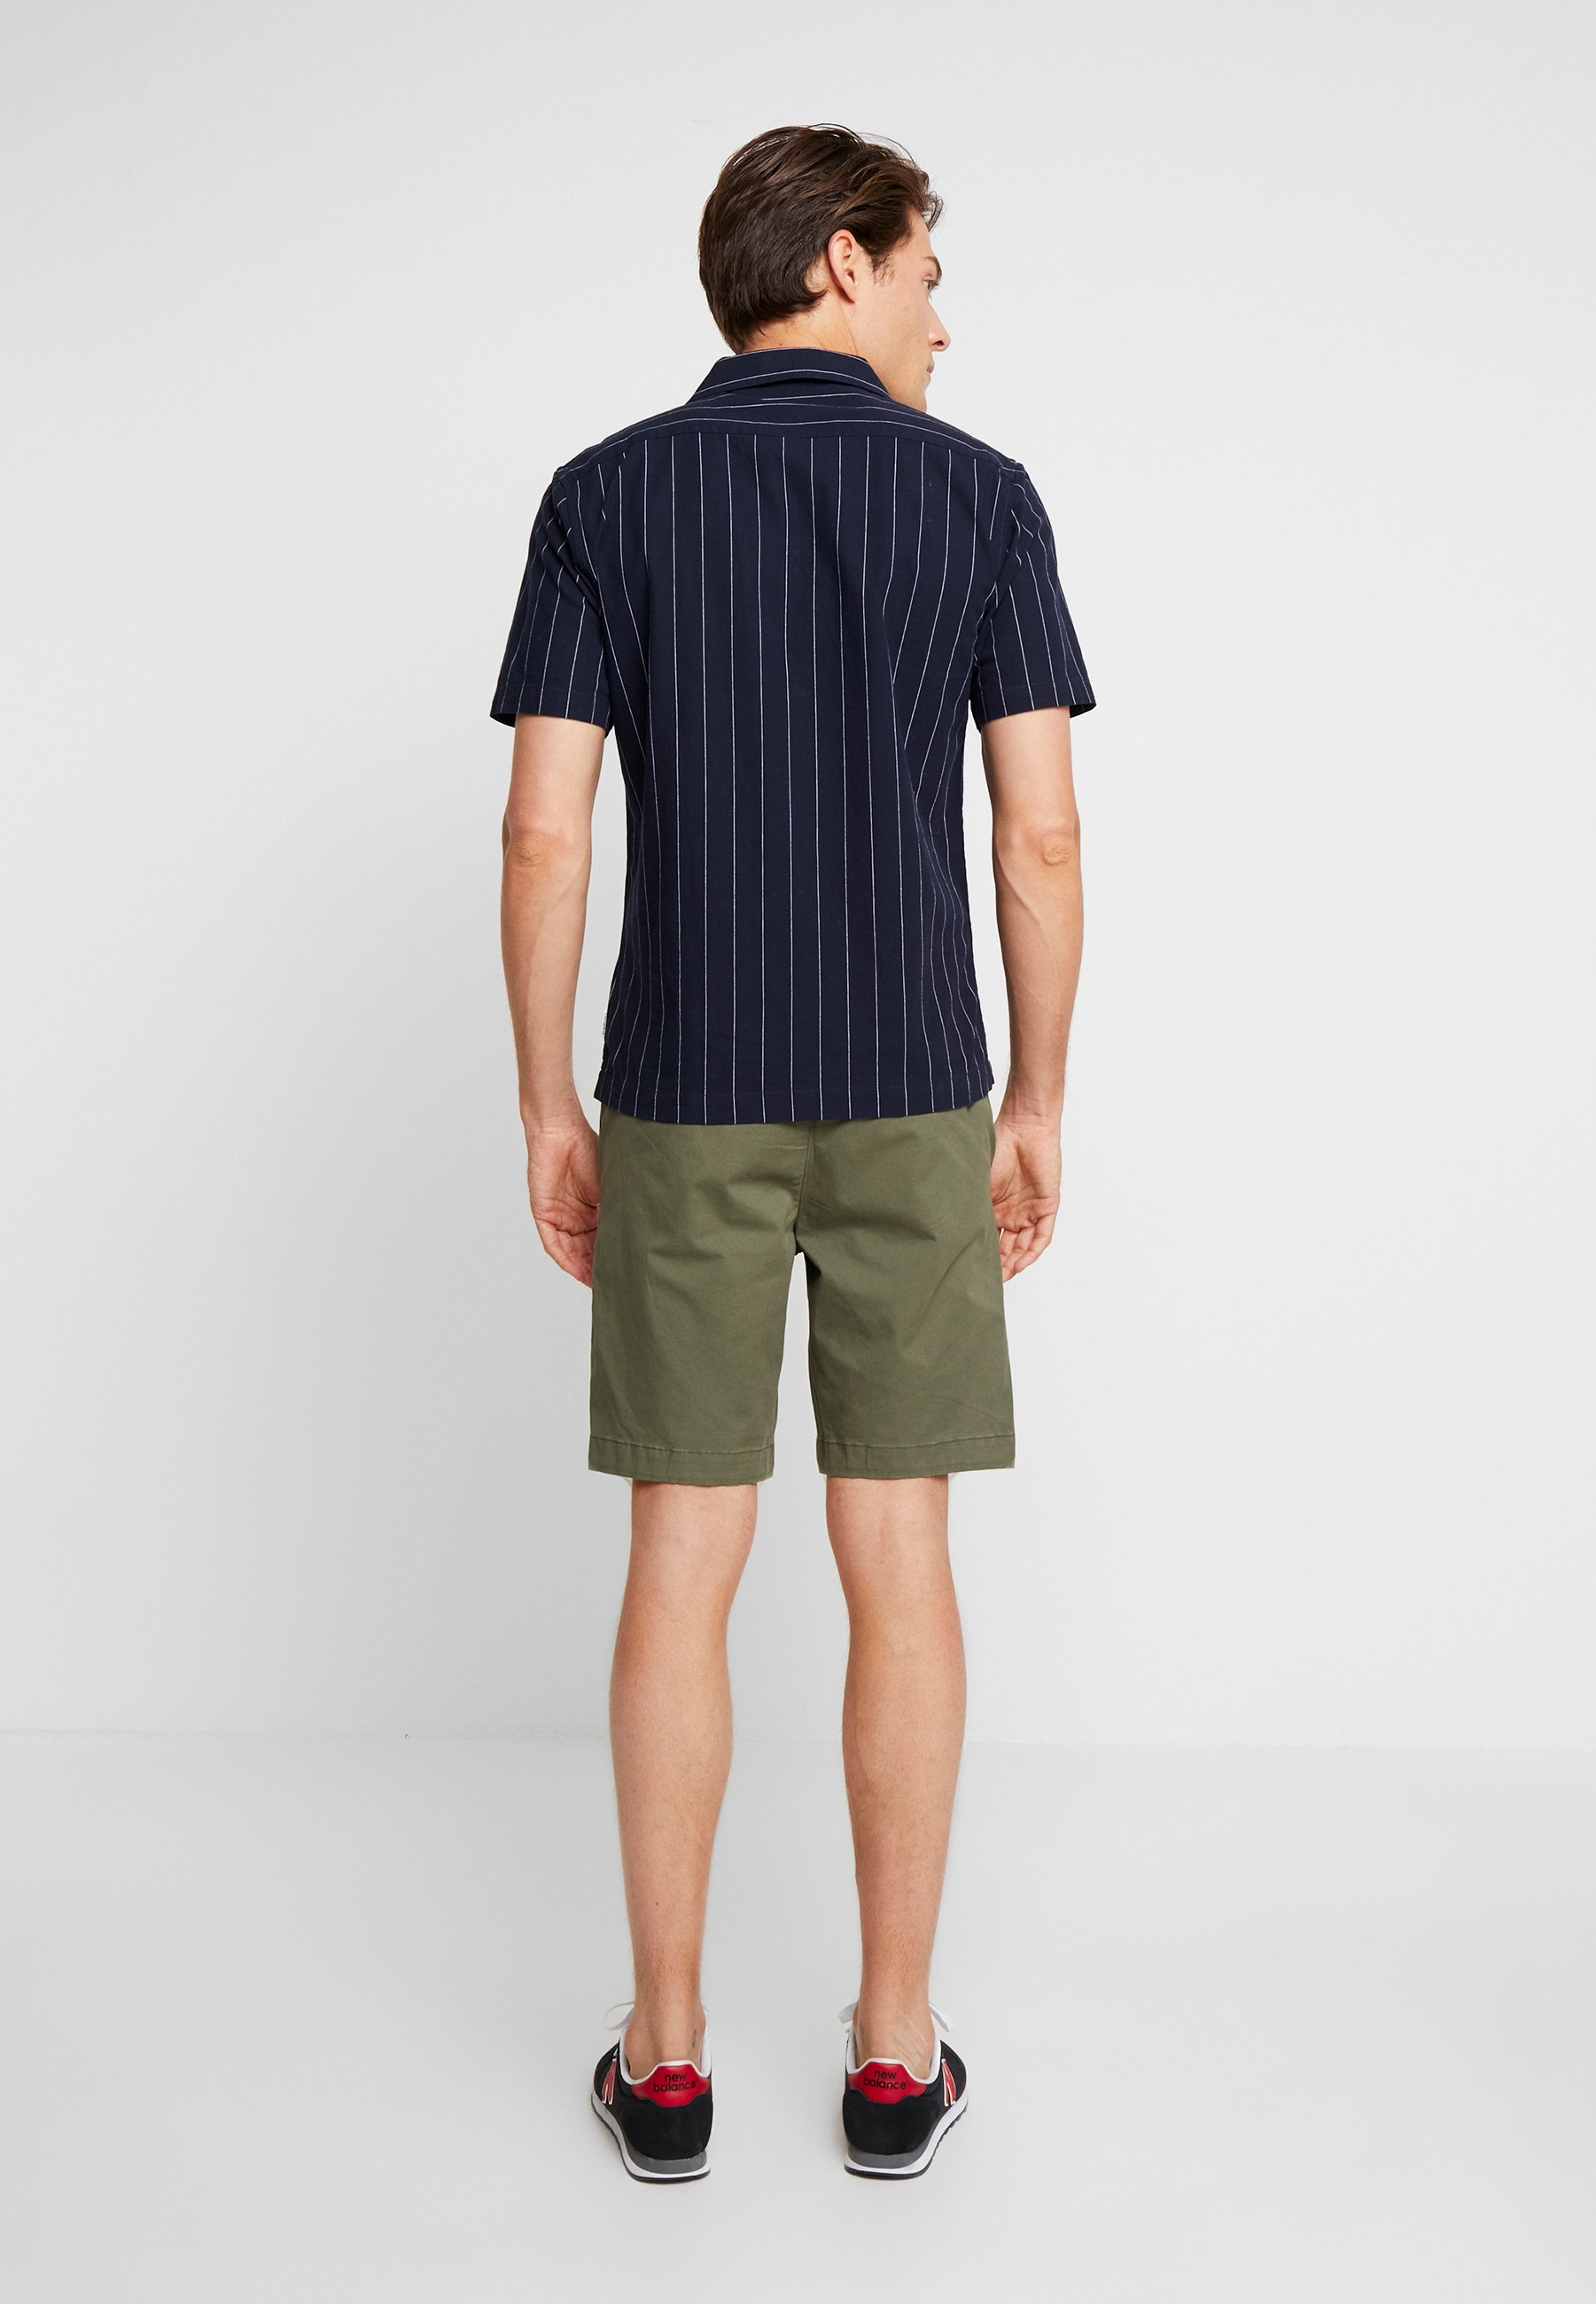 Abercrombieamp; In Beetle Fitch In NeutralsShort Abercrombieamp; Fitch LMqGUpzVjS